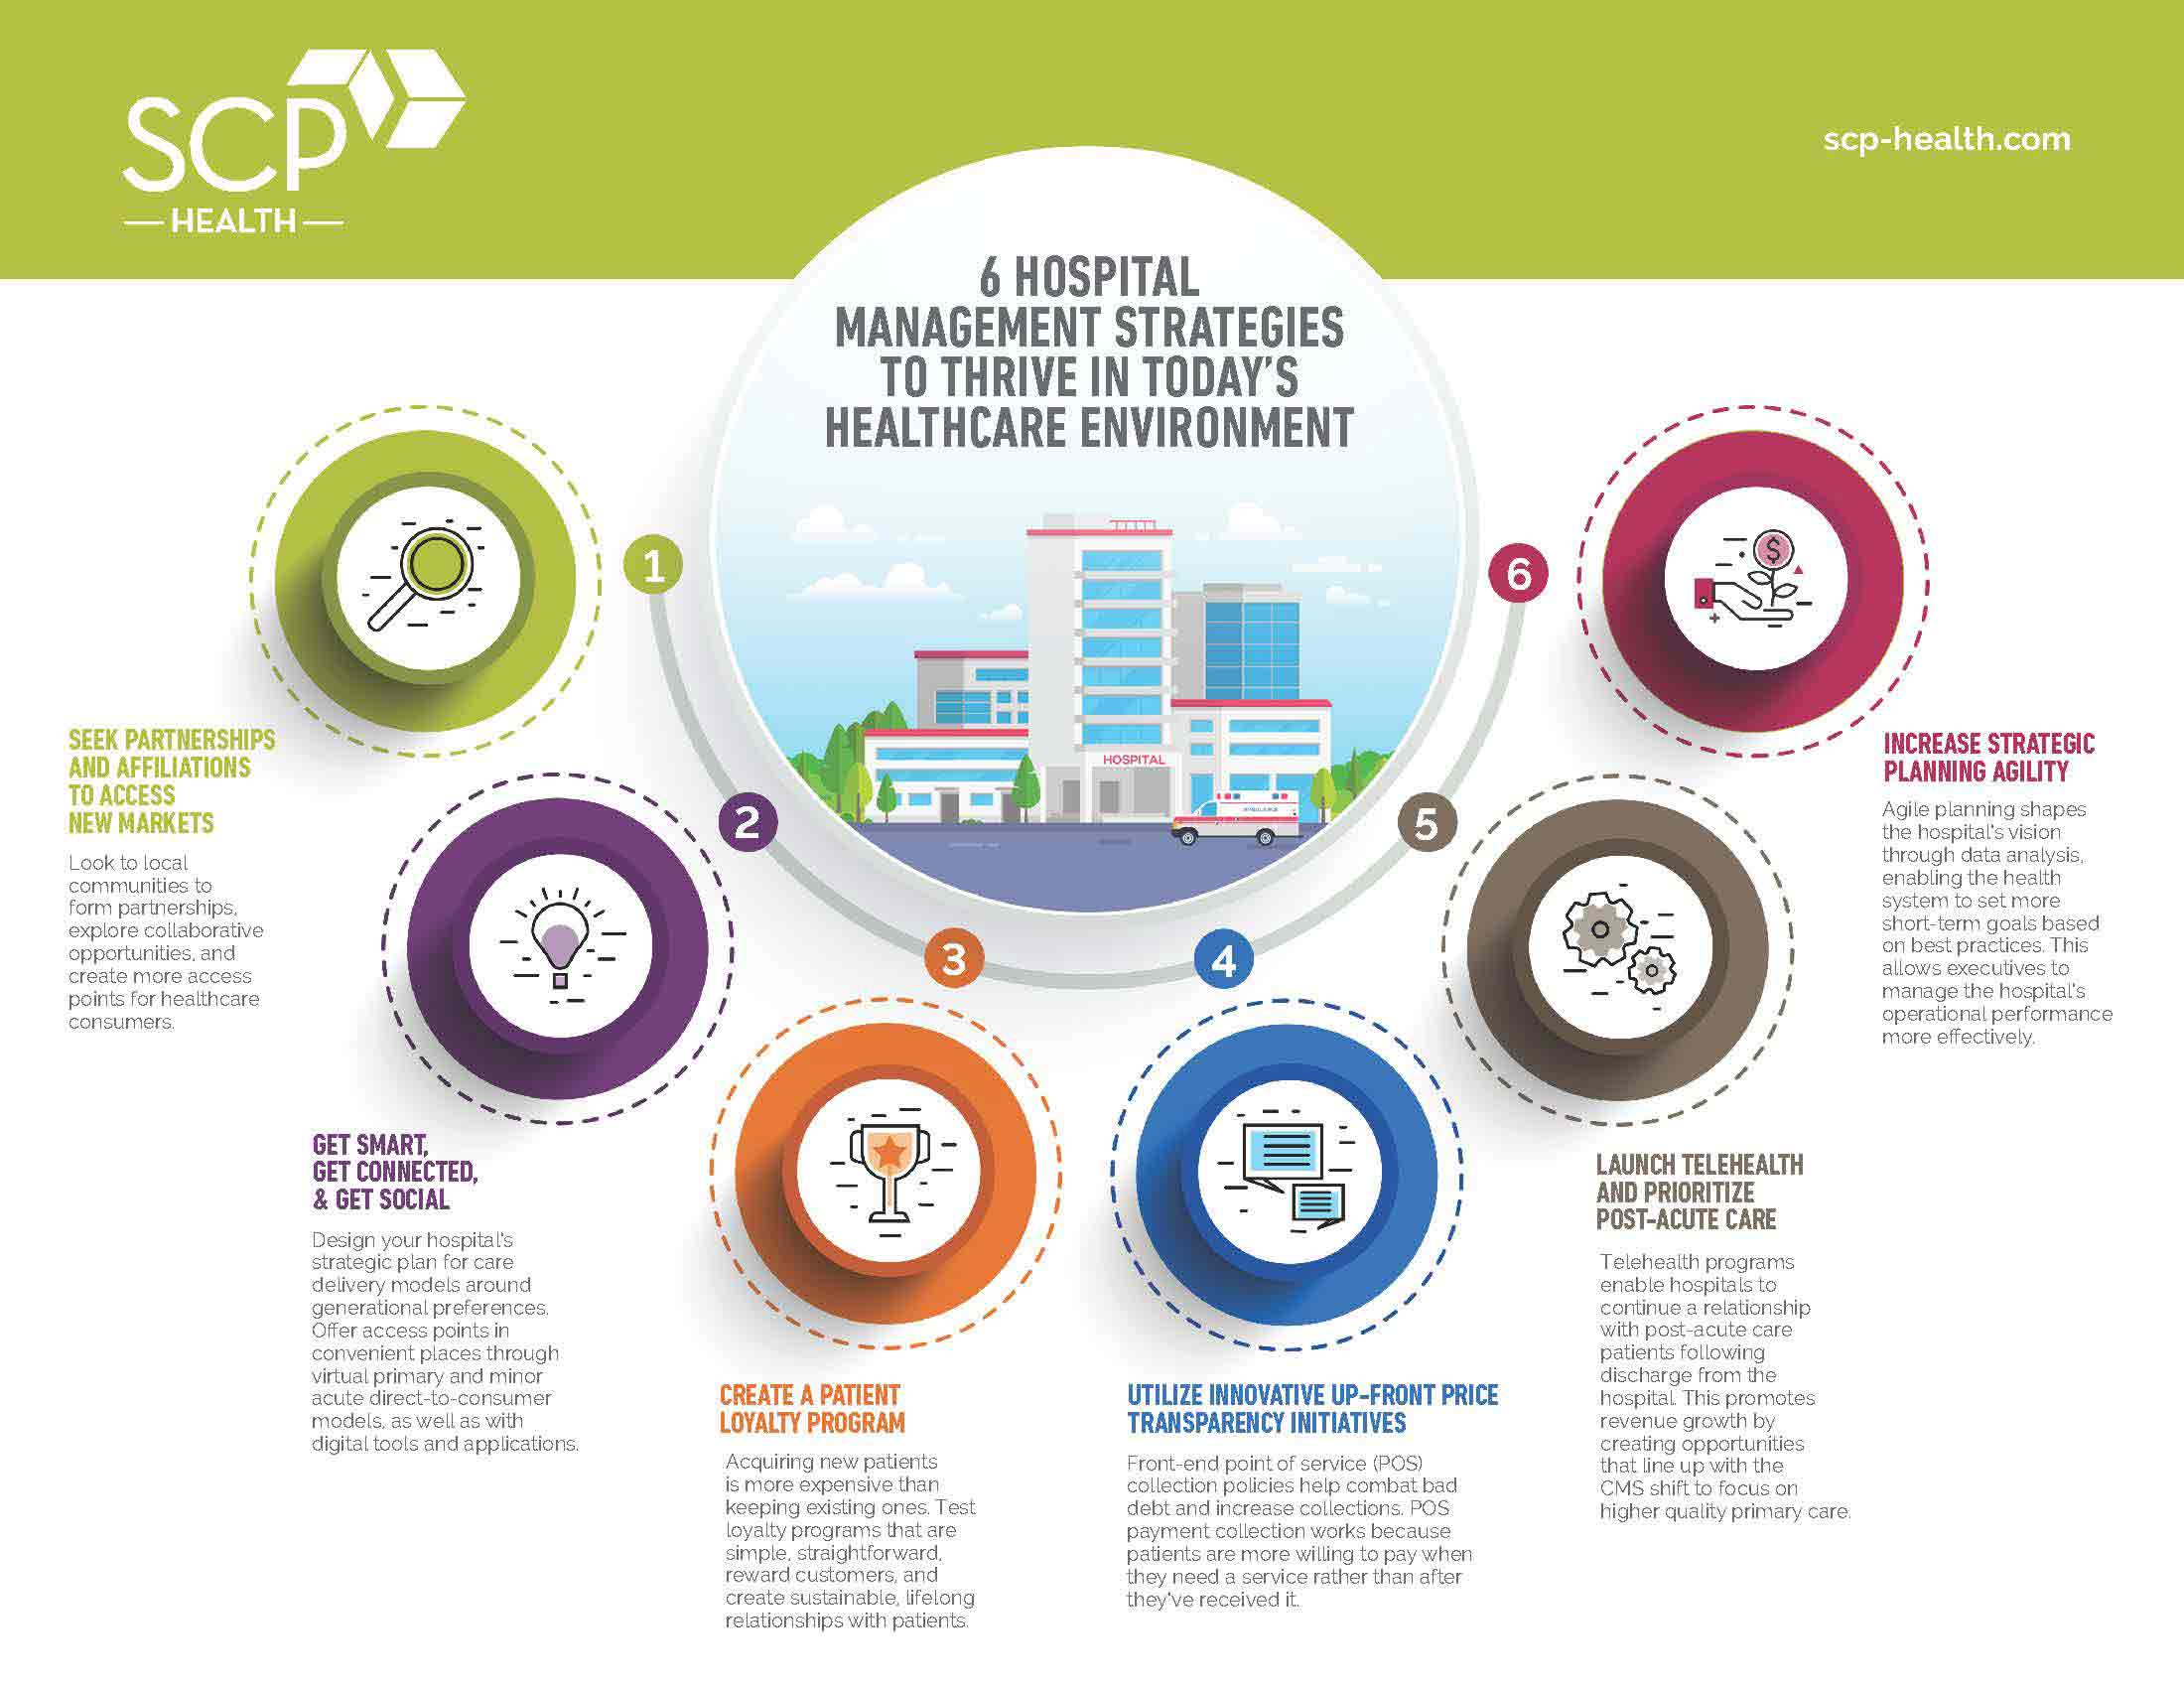 6 Hospital Management Strategies to Thrive in Todays Healthcare Environment